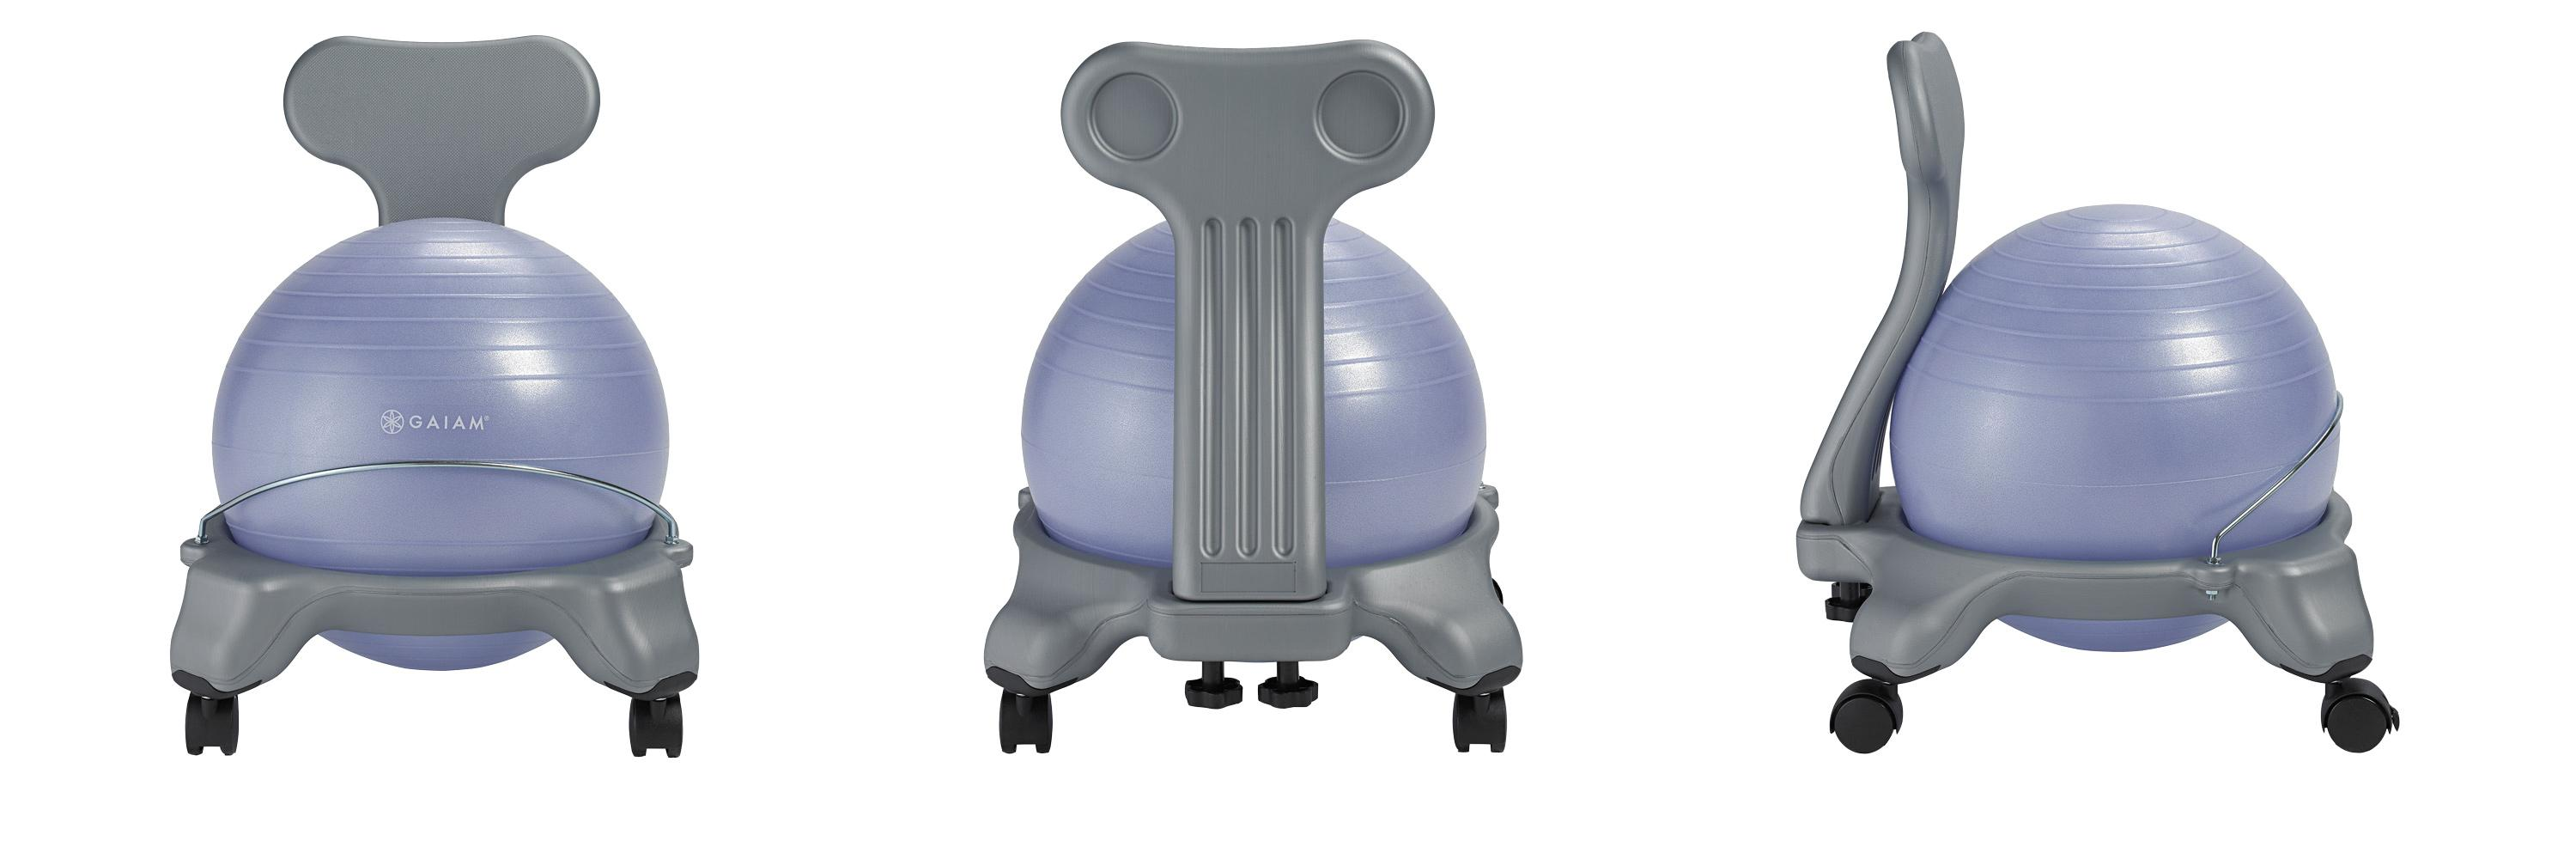 Gaiam Kids Balance Ball Chair Blue and Green Exercise Balls